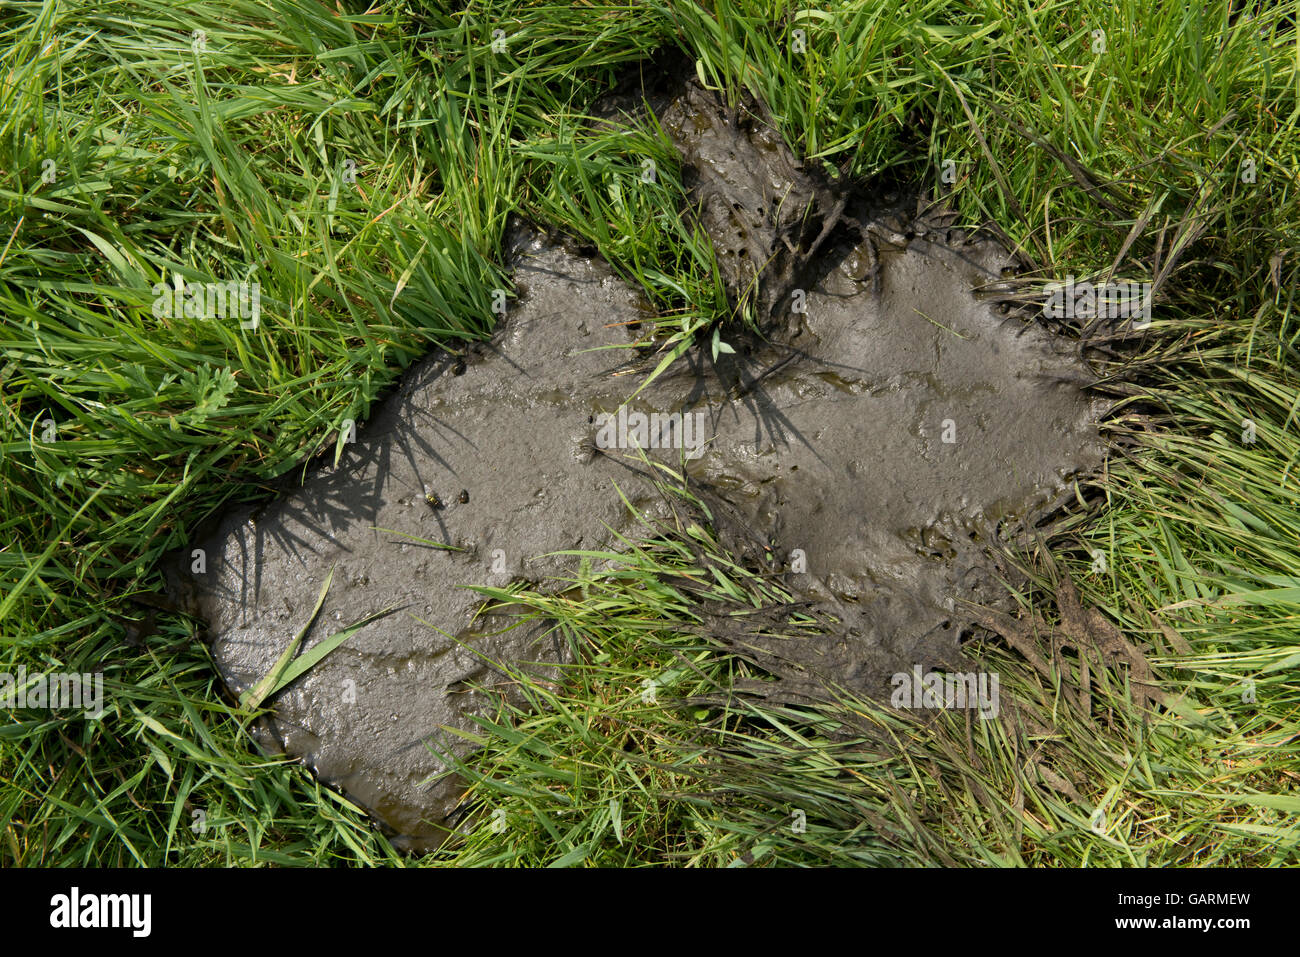 A fresh runny cow pat from a cow grazing on young spring grass, Berkshire, May - Stock Image